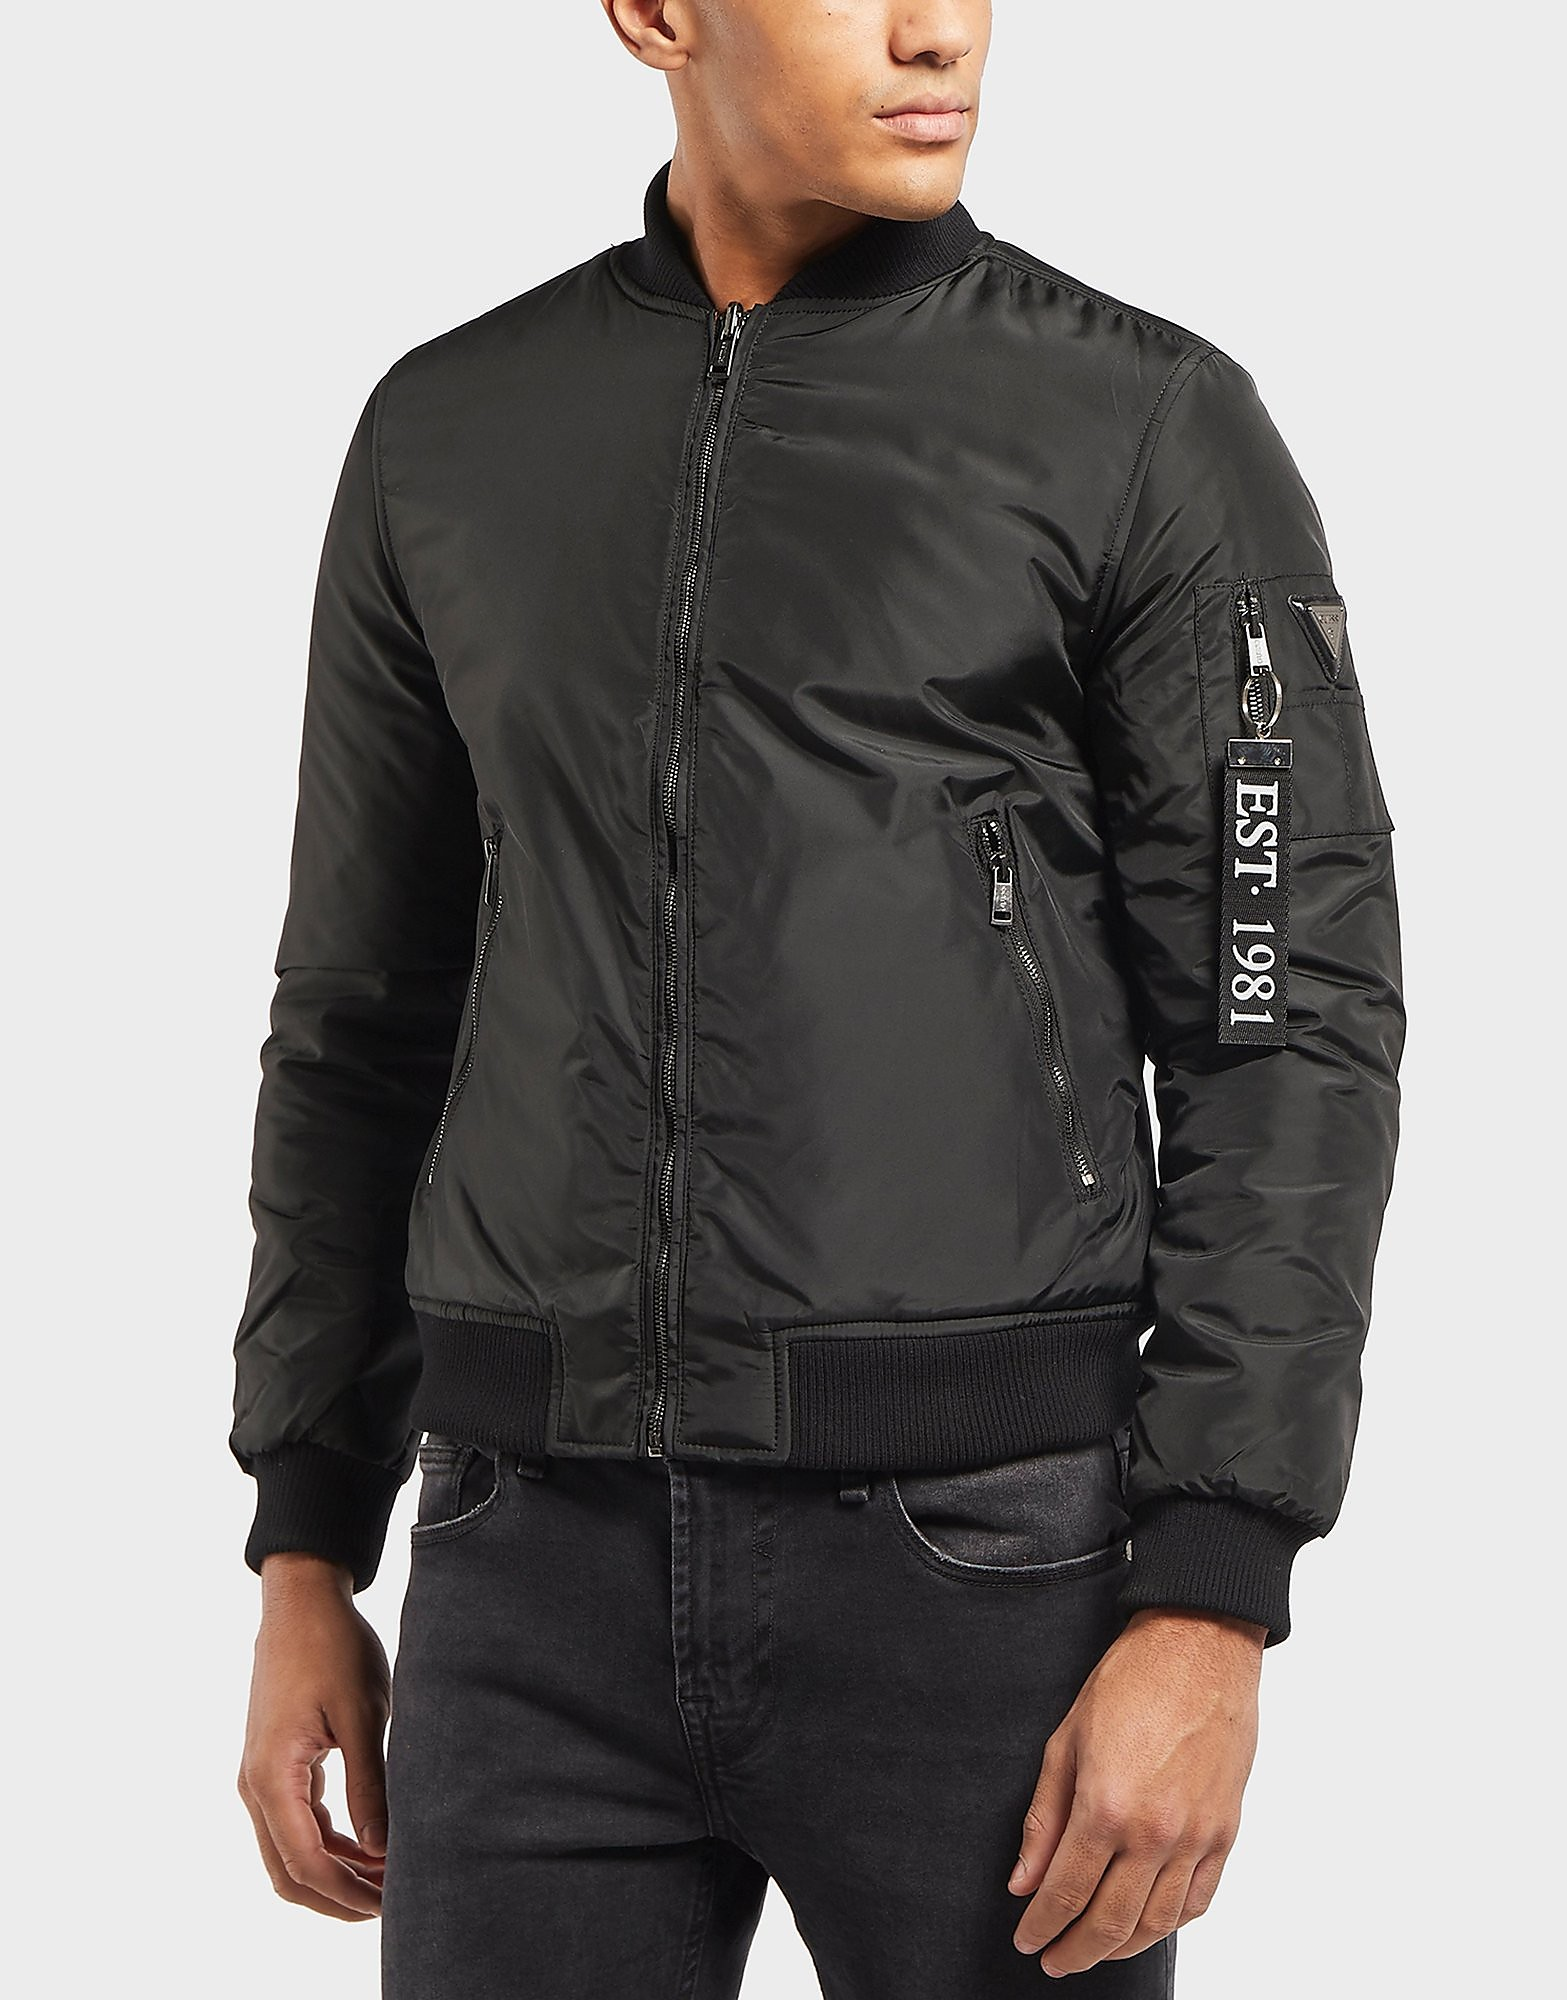 GUESS Reversible Bomber Jacket